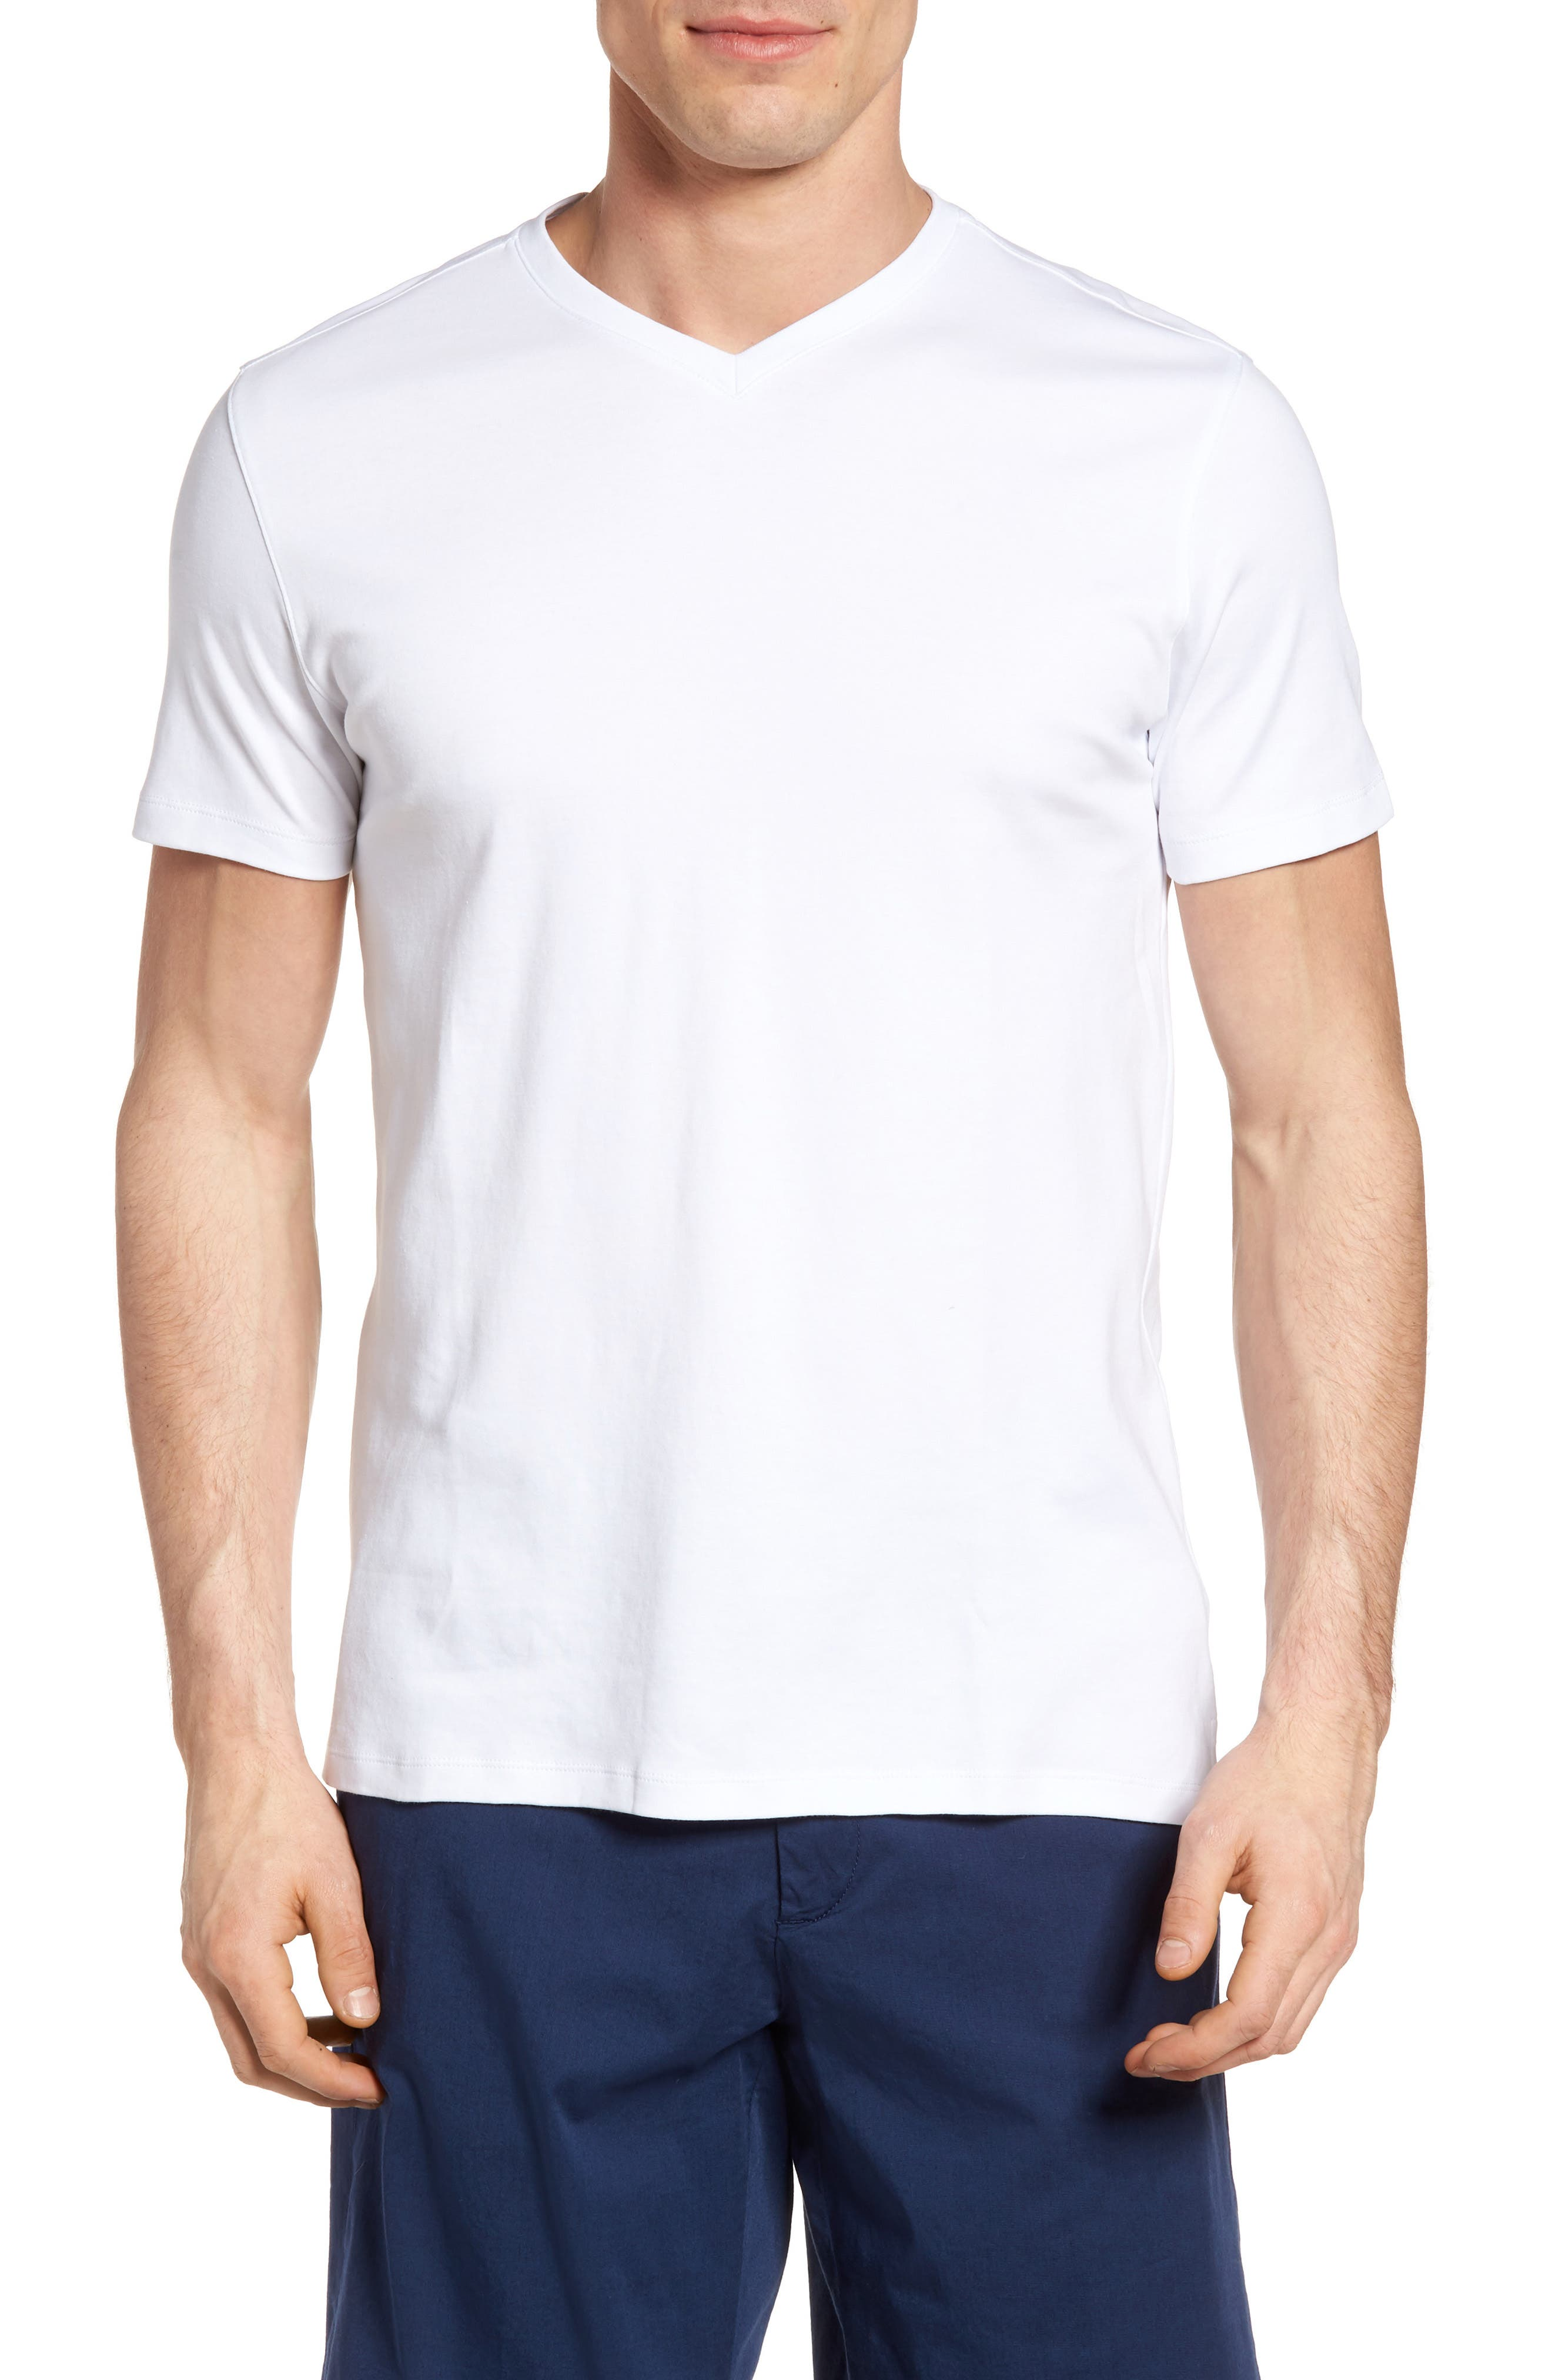 Georgia Regular Fit V-Neck T-Shirt,                             Main thumbnail 1, color,                             White